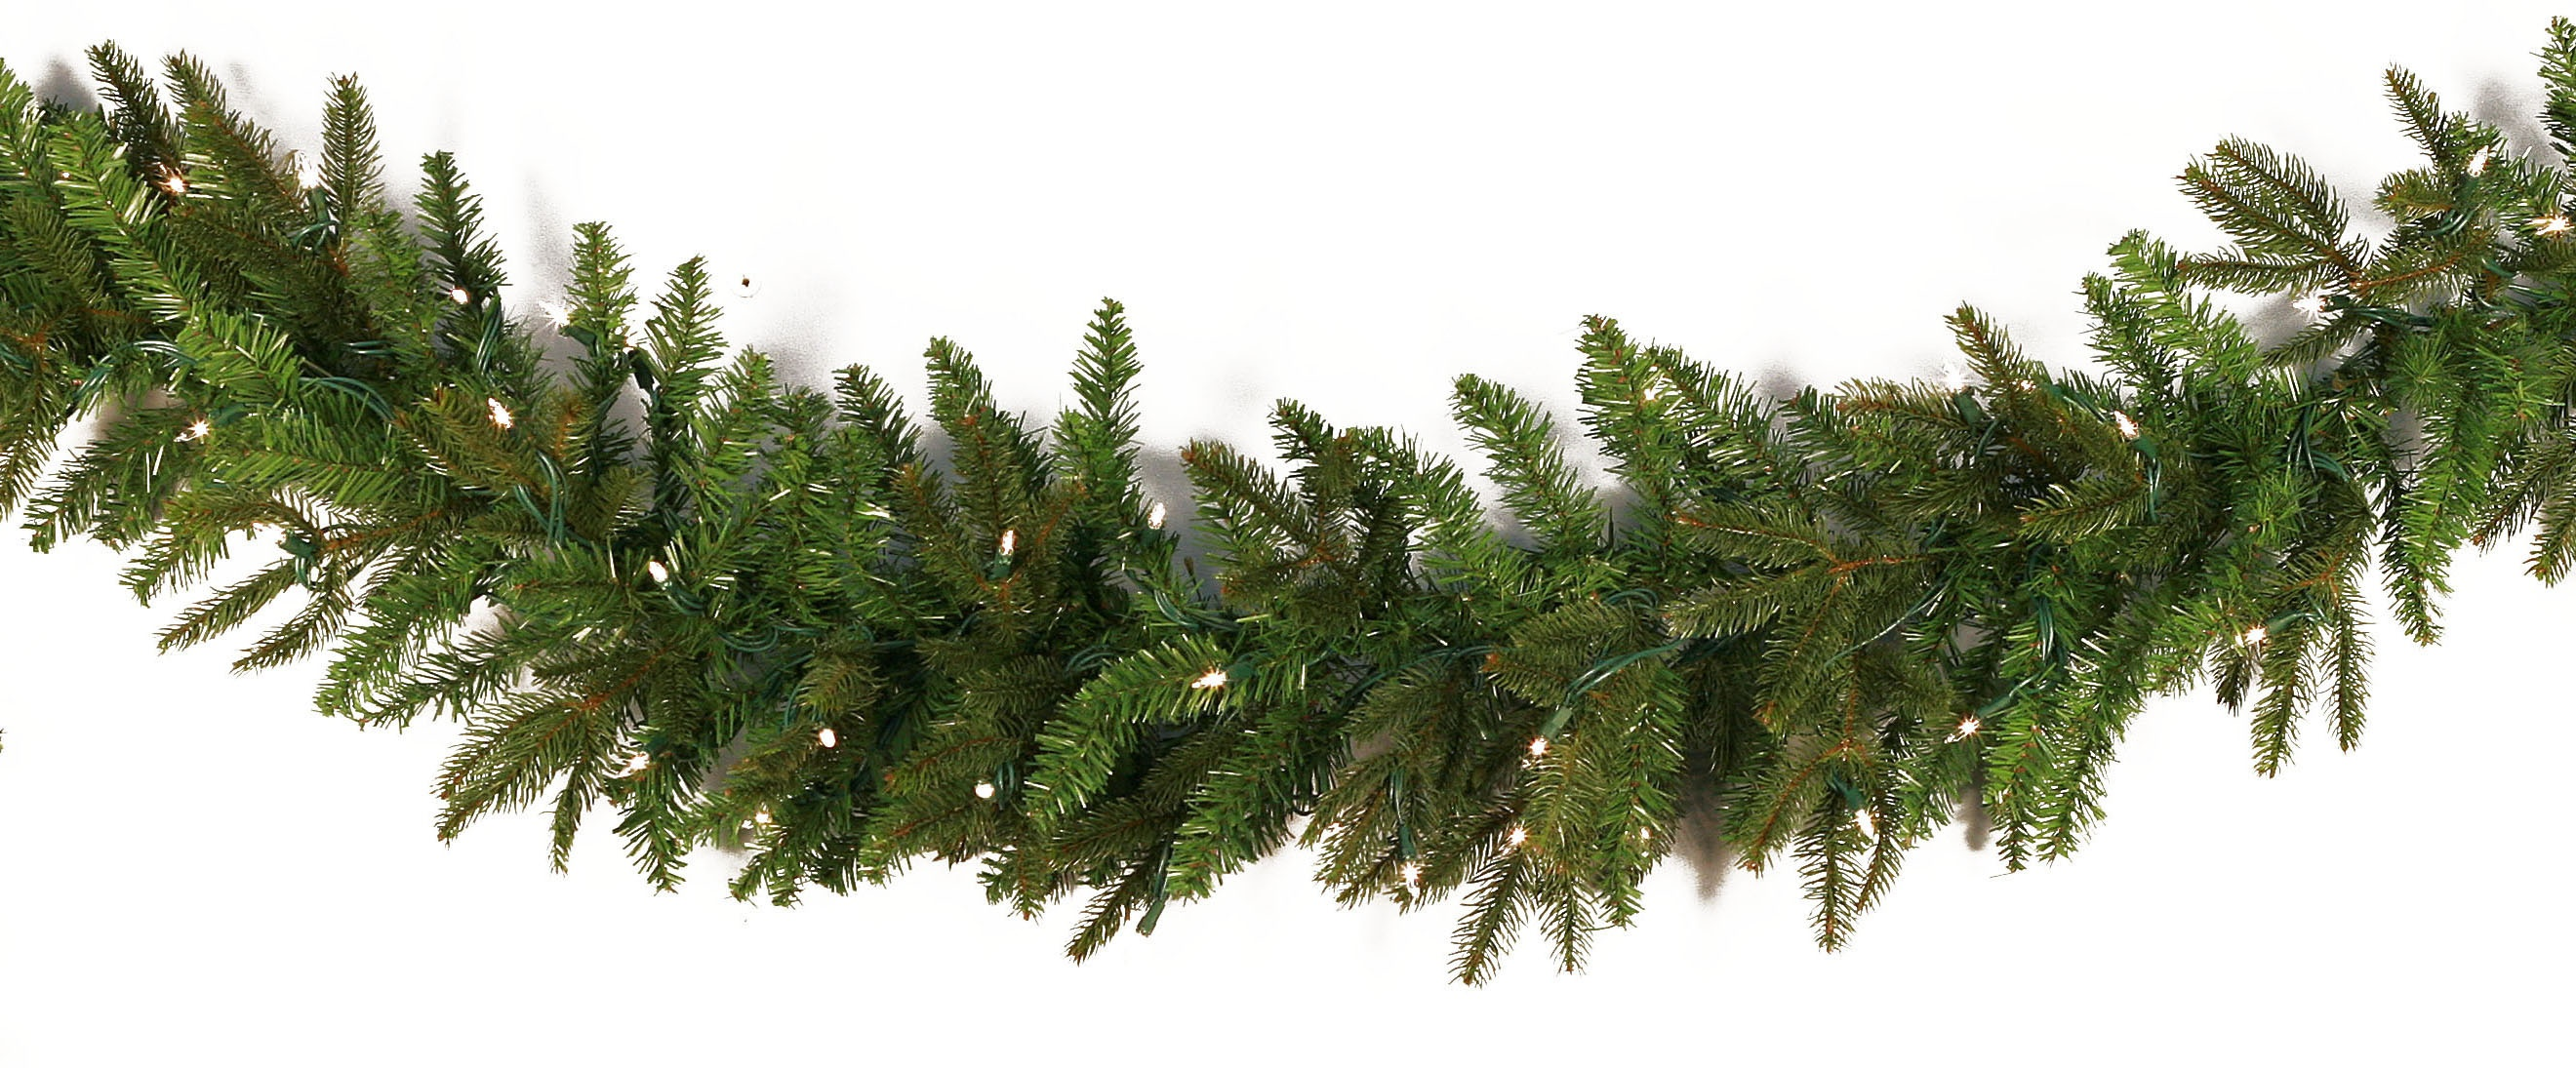 Artificial Christmas Garland - Fraser Fir TruTip PE / PVC Unlit Christmas Garland